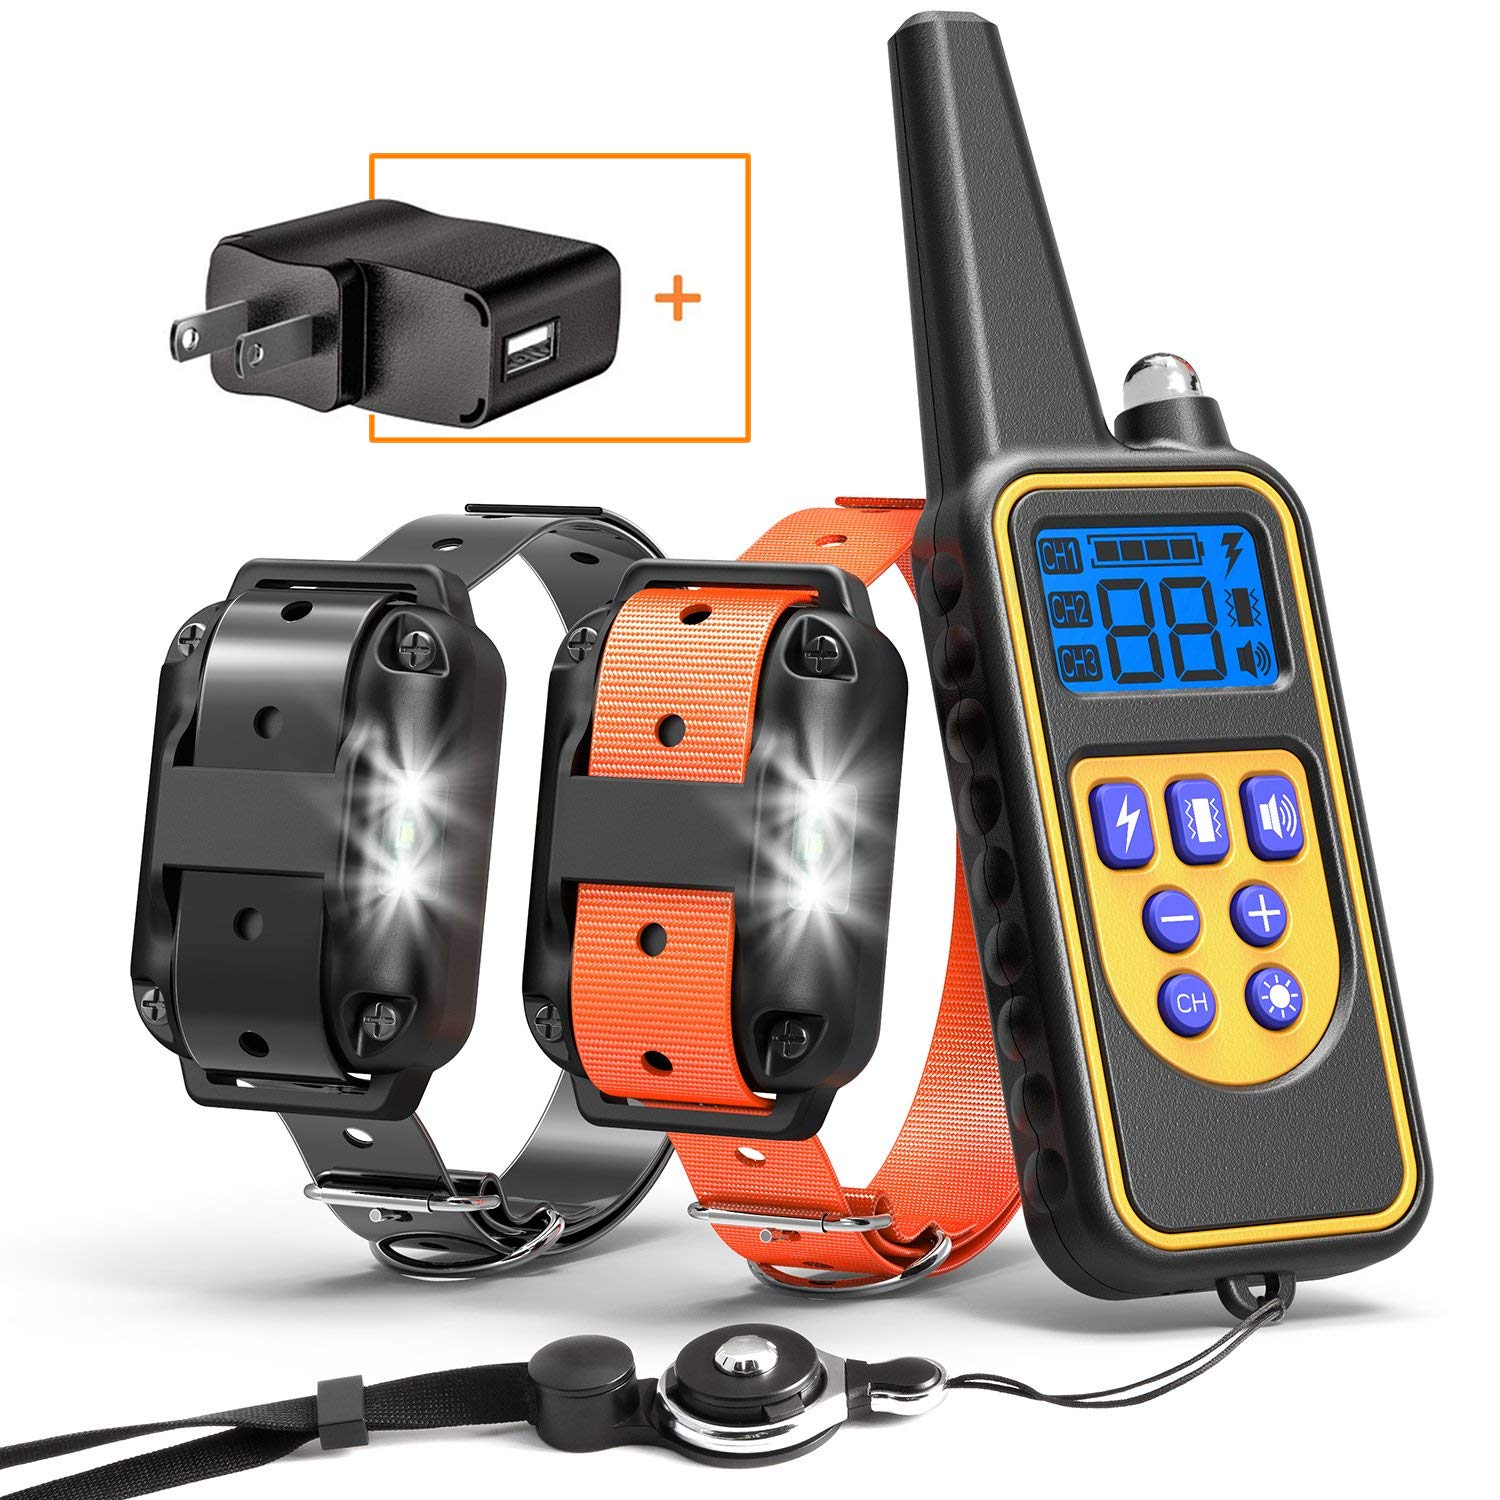 Cambond Dog Training Collar for 2 Dogs, Waterproof 2600ft Range Dog Shock Collar with Remote for Medium and Large Breed Dog with 4 Training Modes Light Shock Vibration Beep, 2018 Upgraded